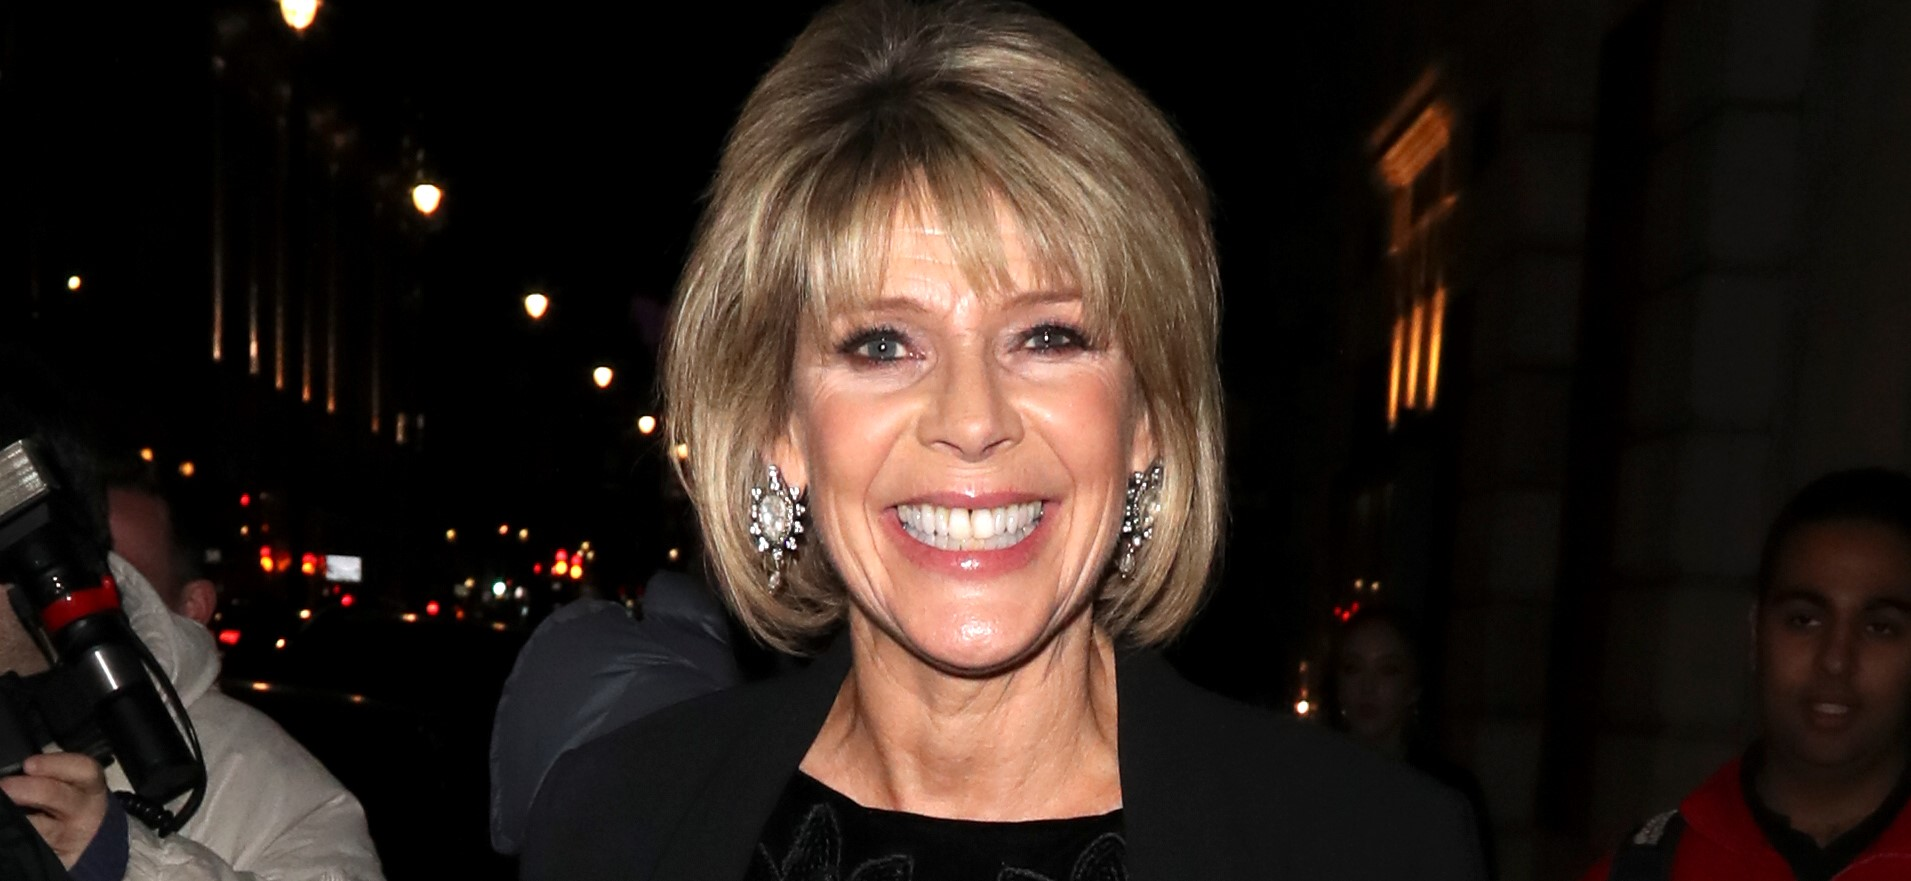 Ruth Langsford turned down a return to Strictly